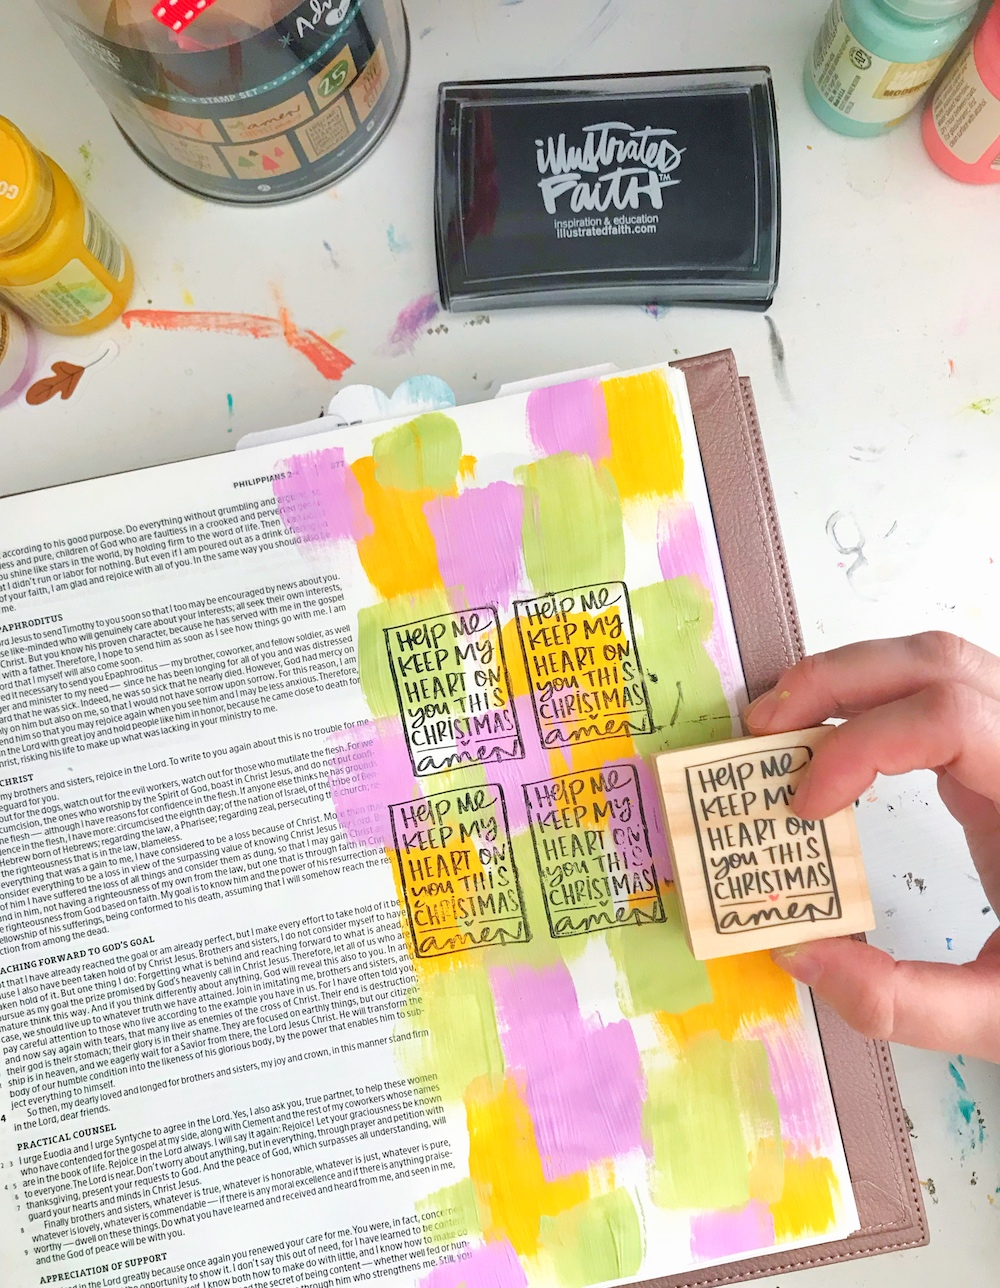 Mixed Media Bible Journaling Process using the Illustrated Faith Advent Collection available at Joann Stores | Less Art, More Jesus by April aka Marine Parents | Advent Season | Philippians 3:19-20